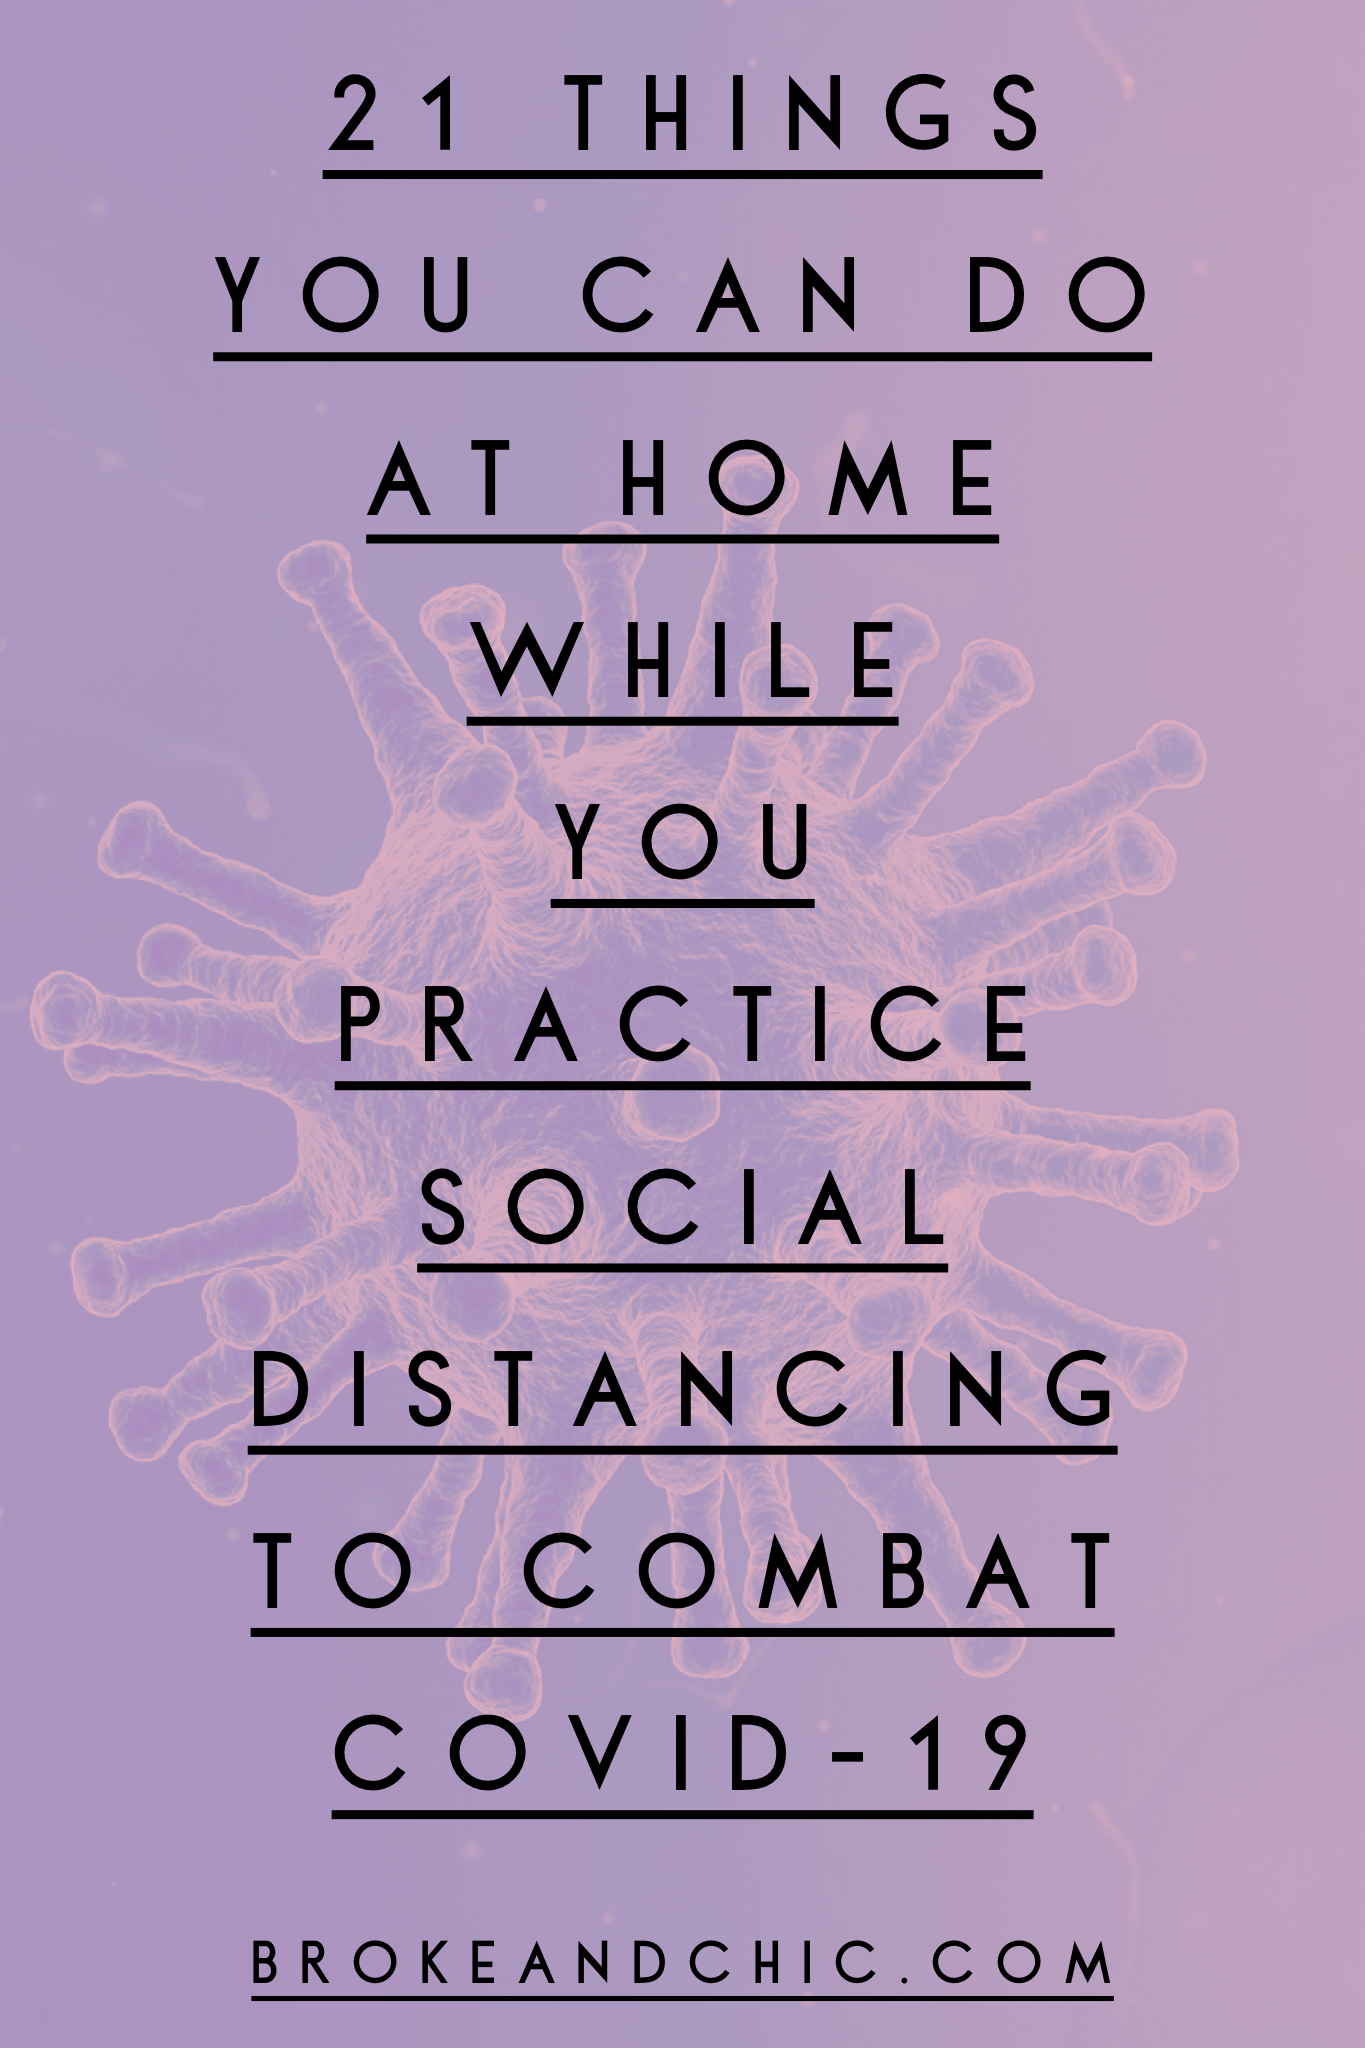 Things to do at home during social distancing